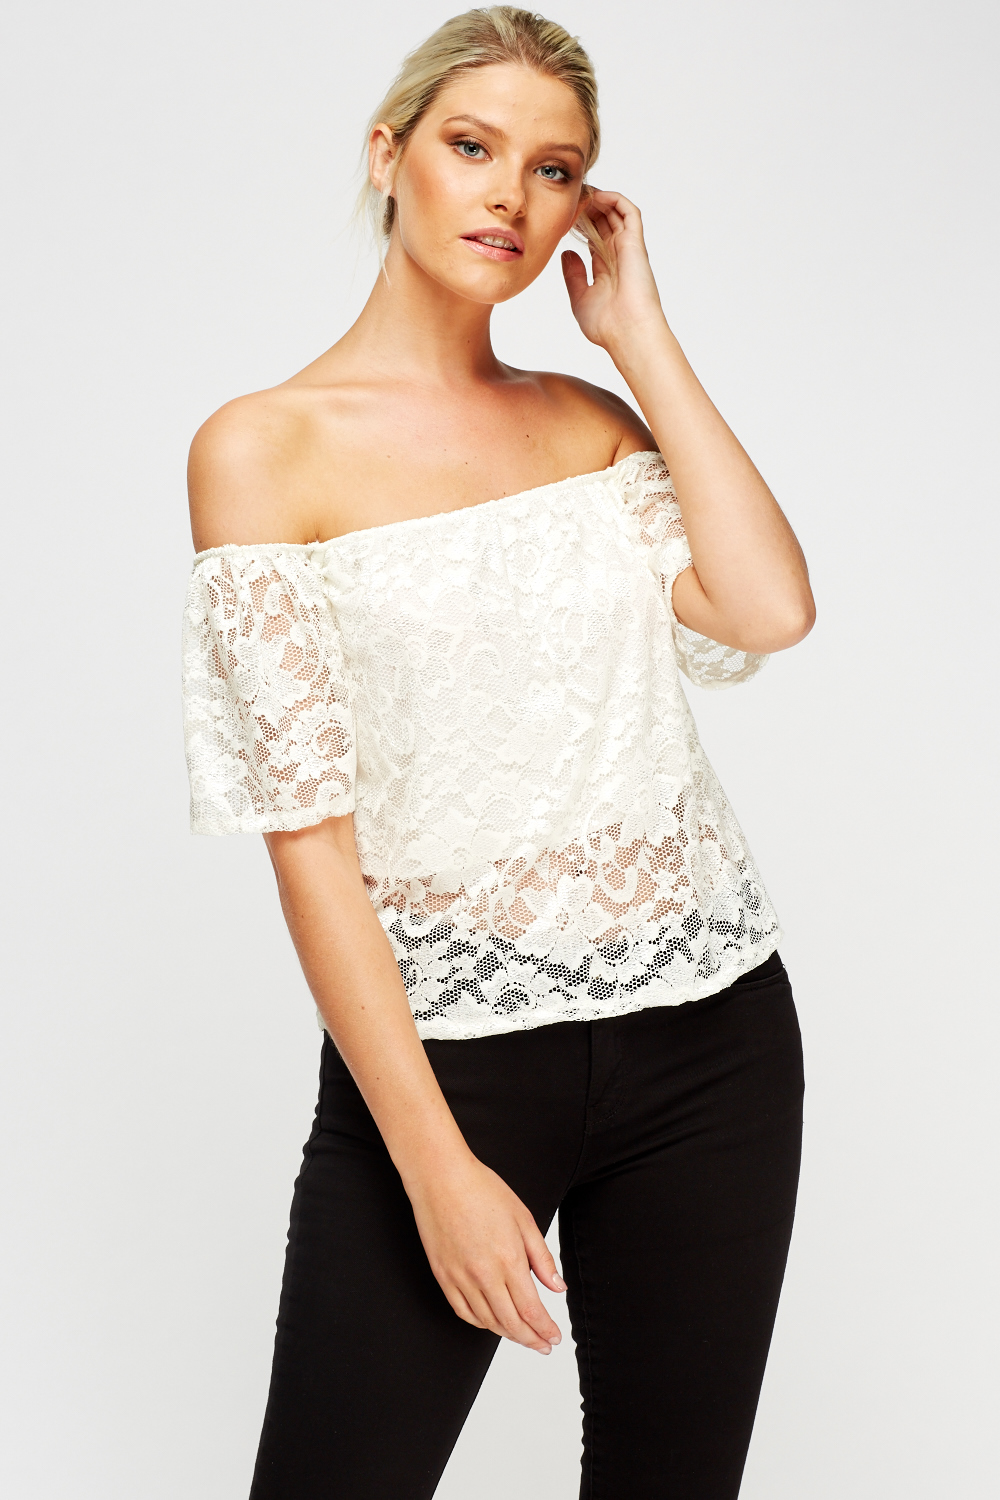 ef5b5ad82a1d9 Off Shoulder Lace Overlay Top - Just £5